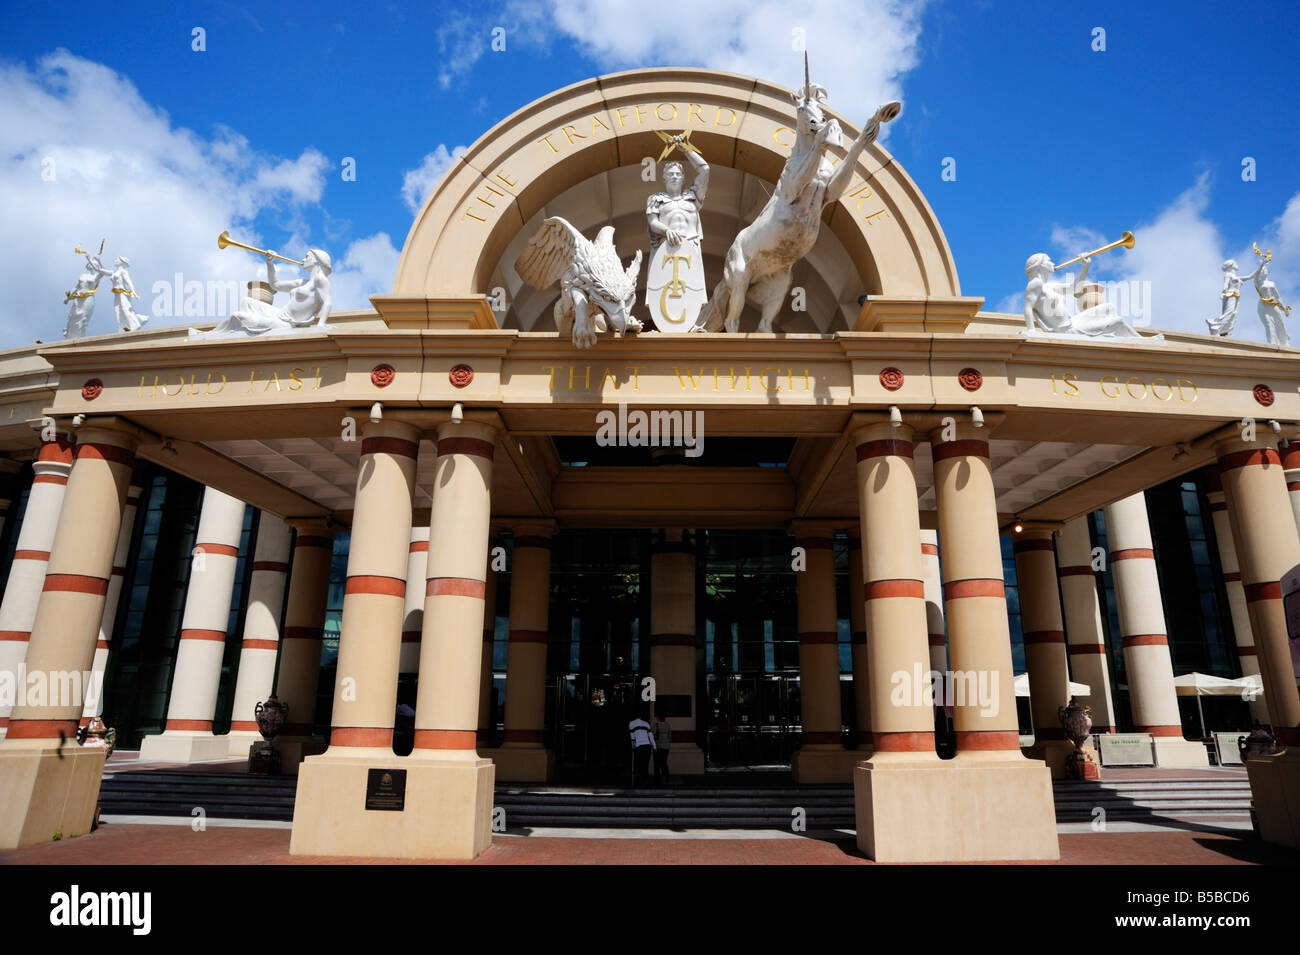 The Trafford Centre, Manchester, England, Europe - Stock Image